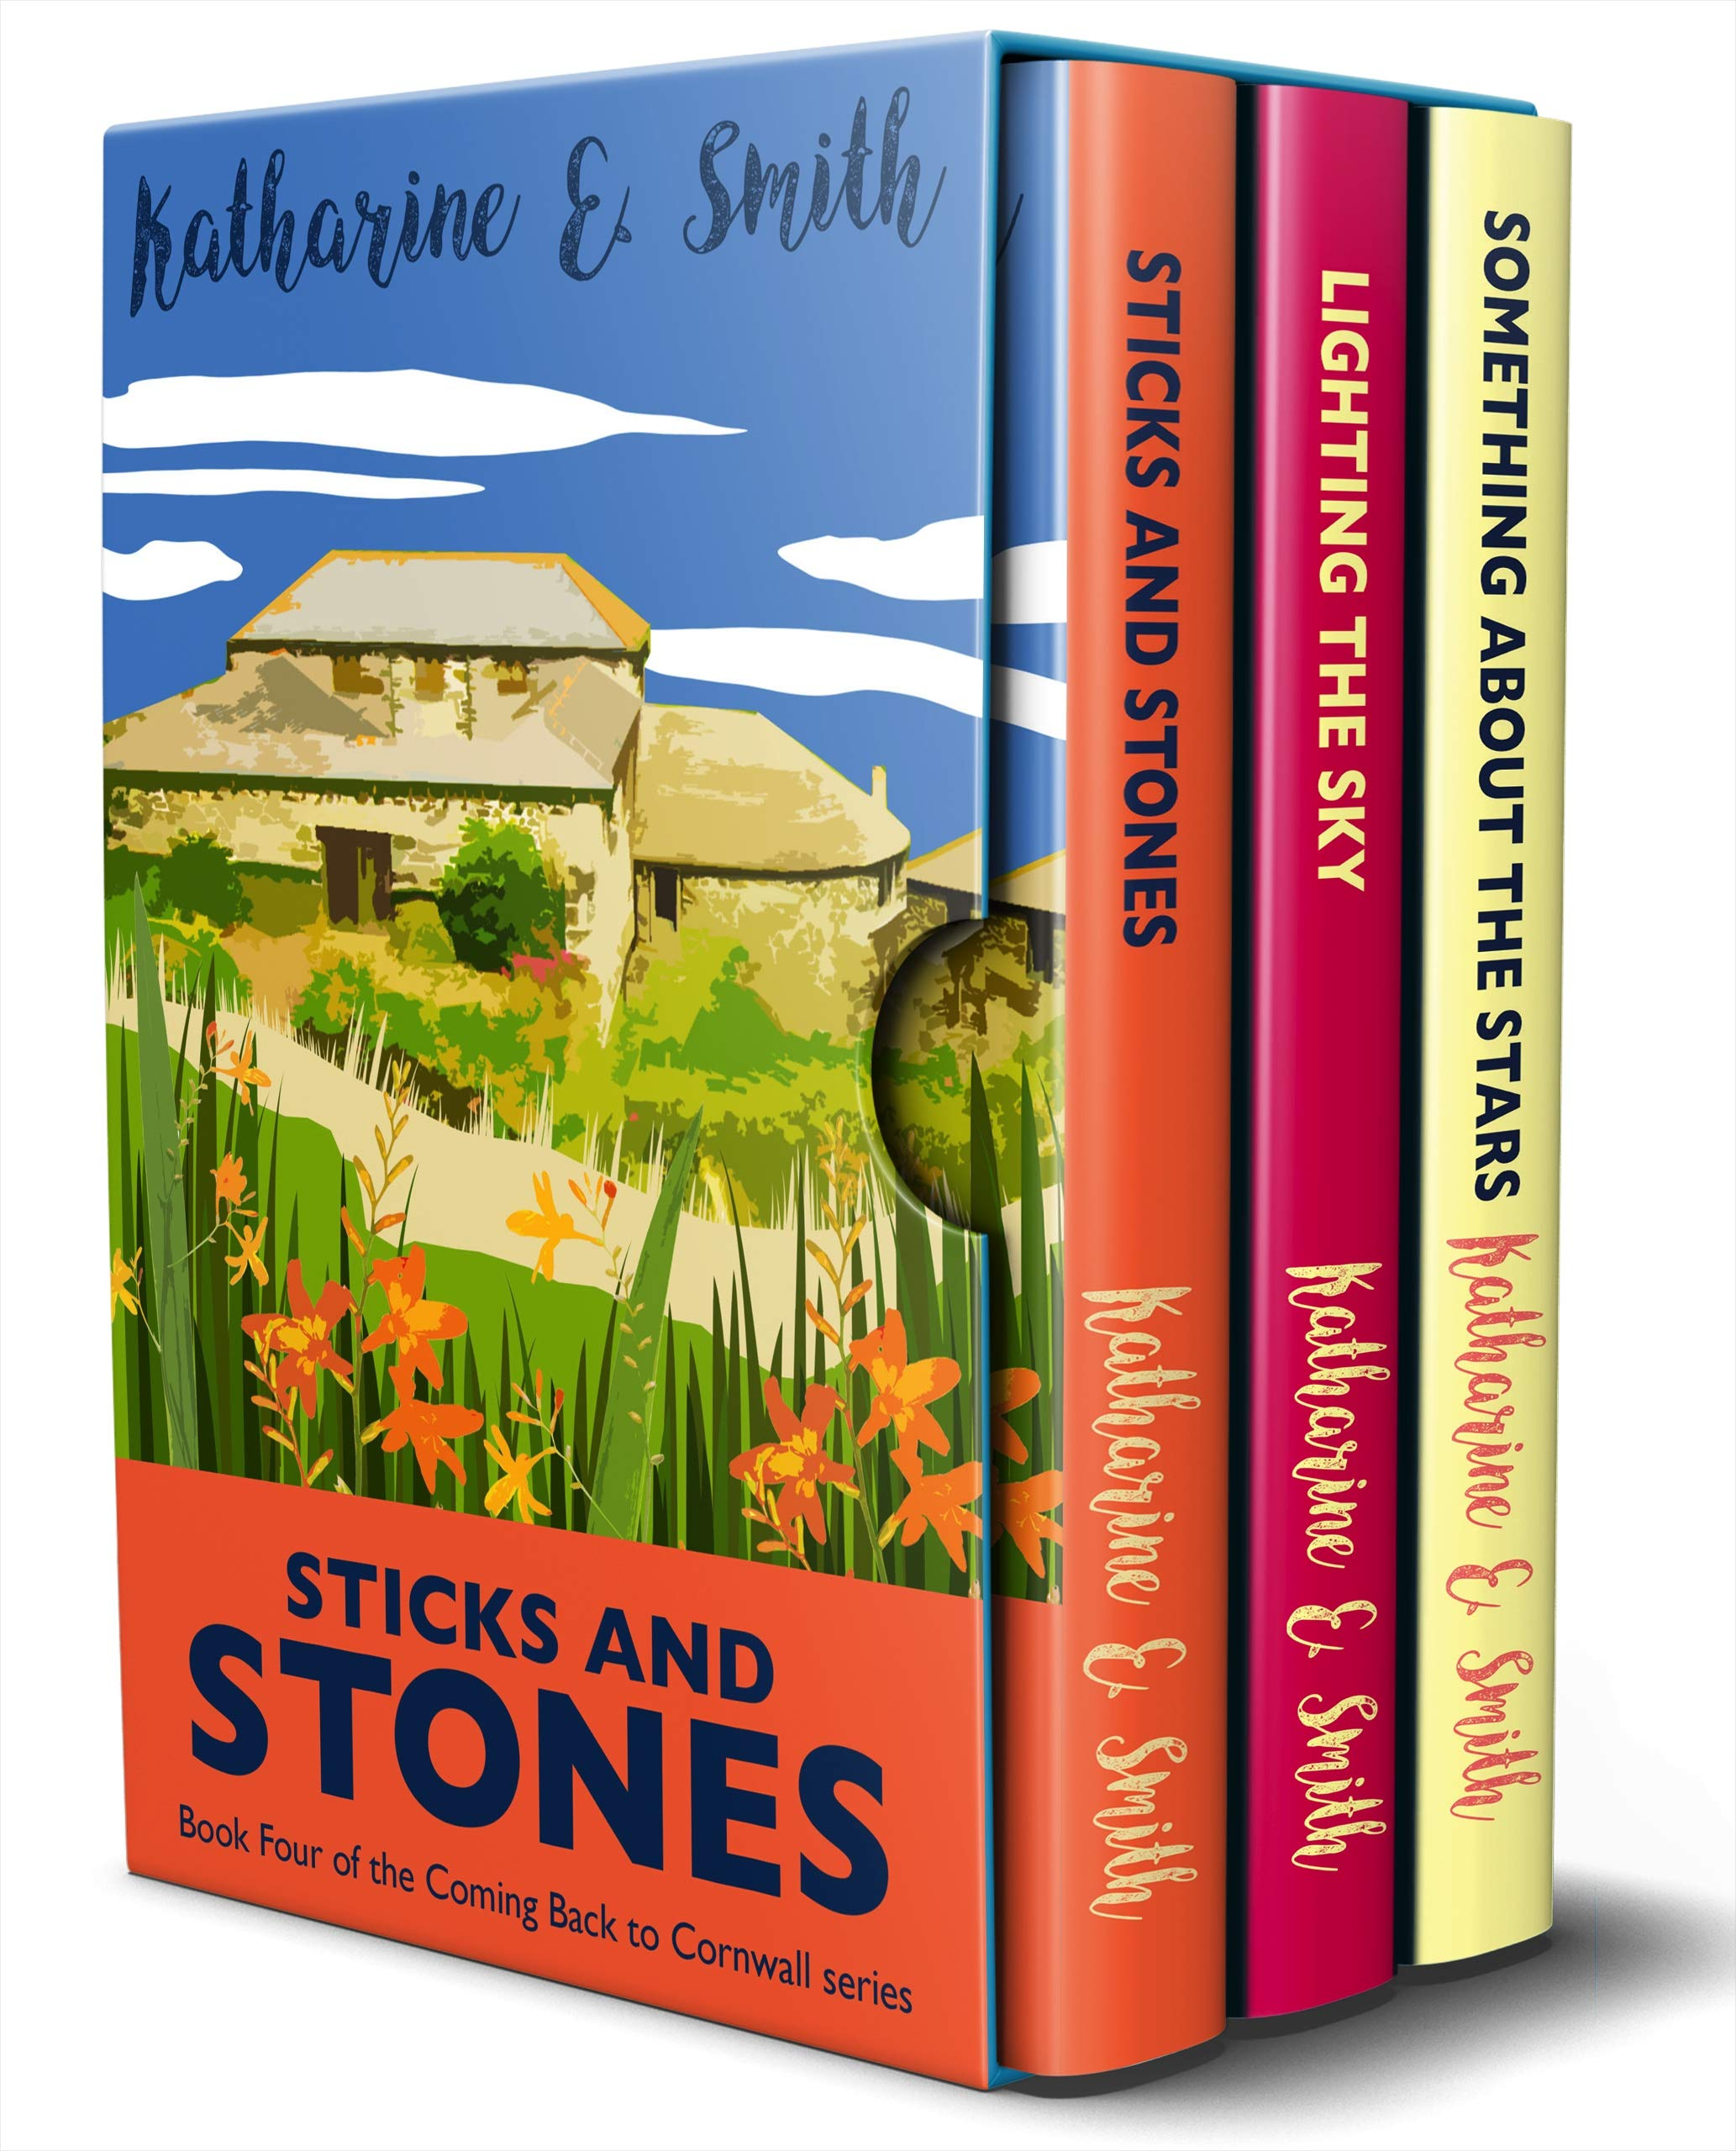 Coming Back to Cornwall Boxset: Books Four to Six: What Alice did next. More from the uplifting, inspirational series readers can't put down